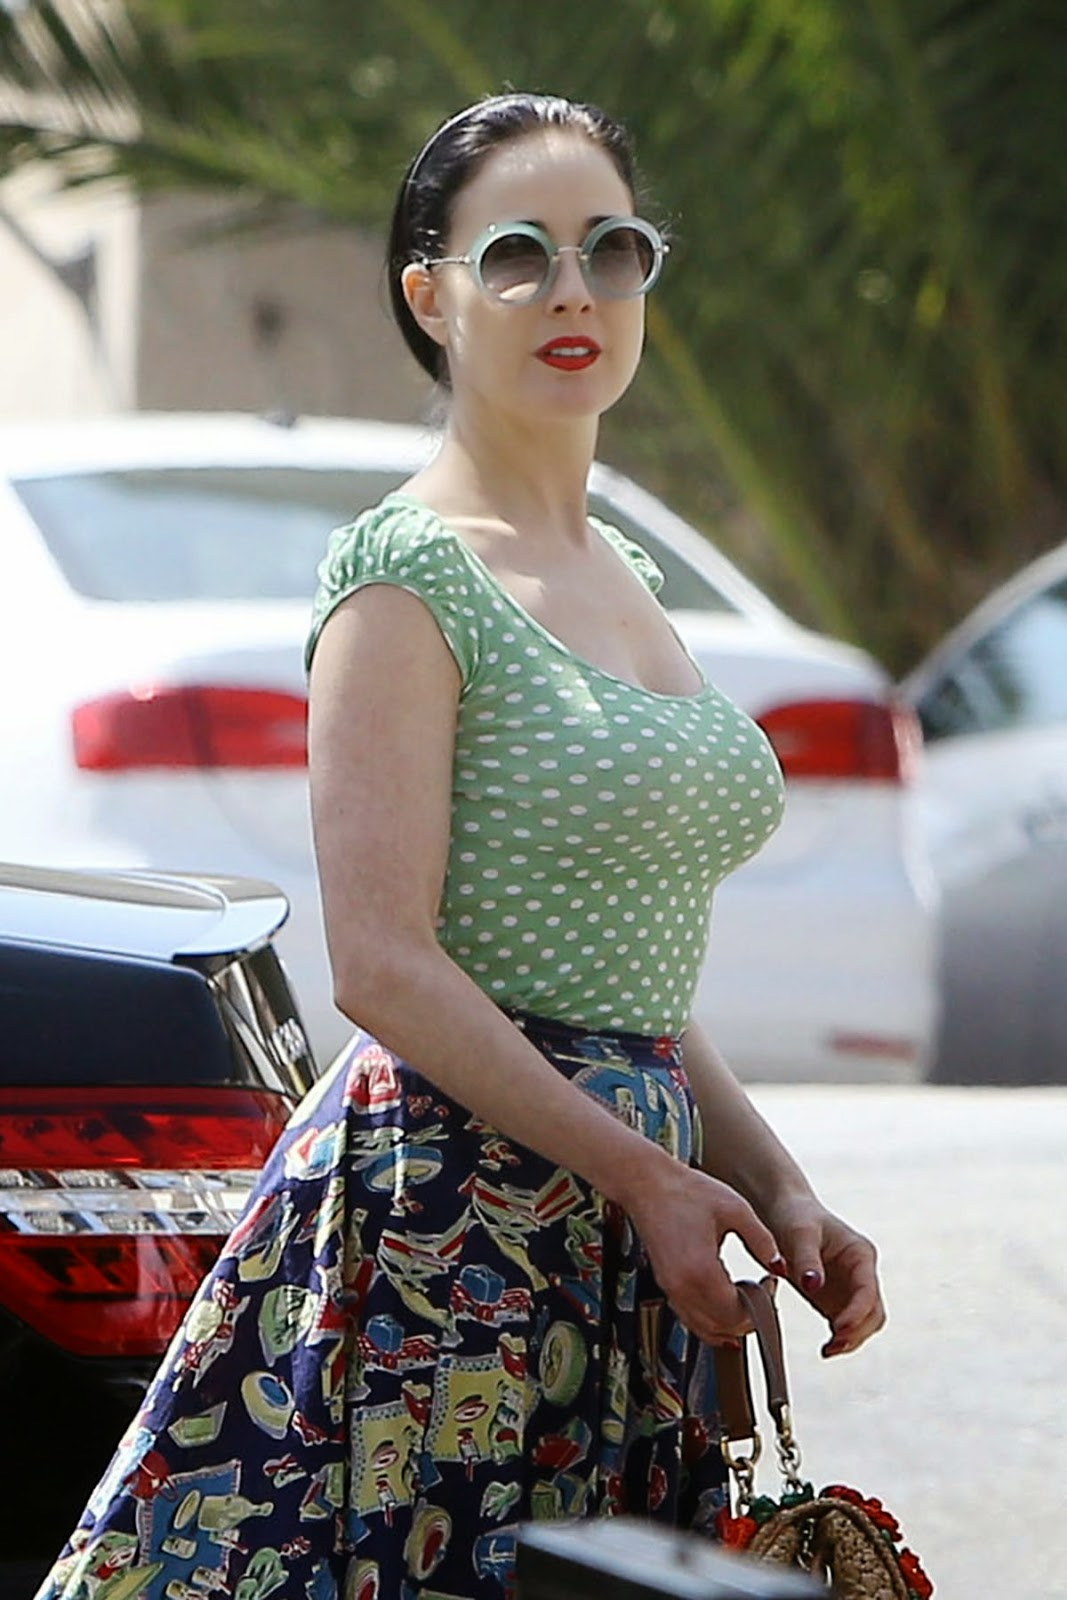 Dita Von Teese In A Polka Dot Top And Printed Skirt Out